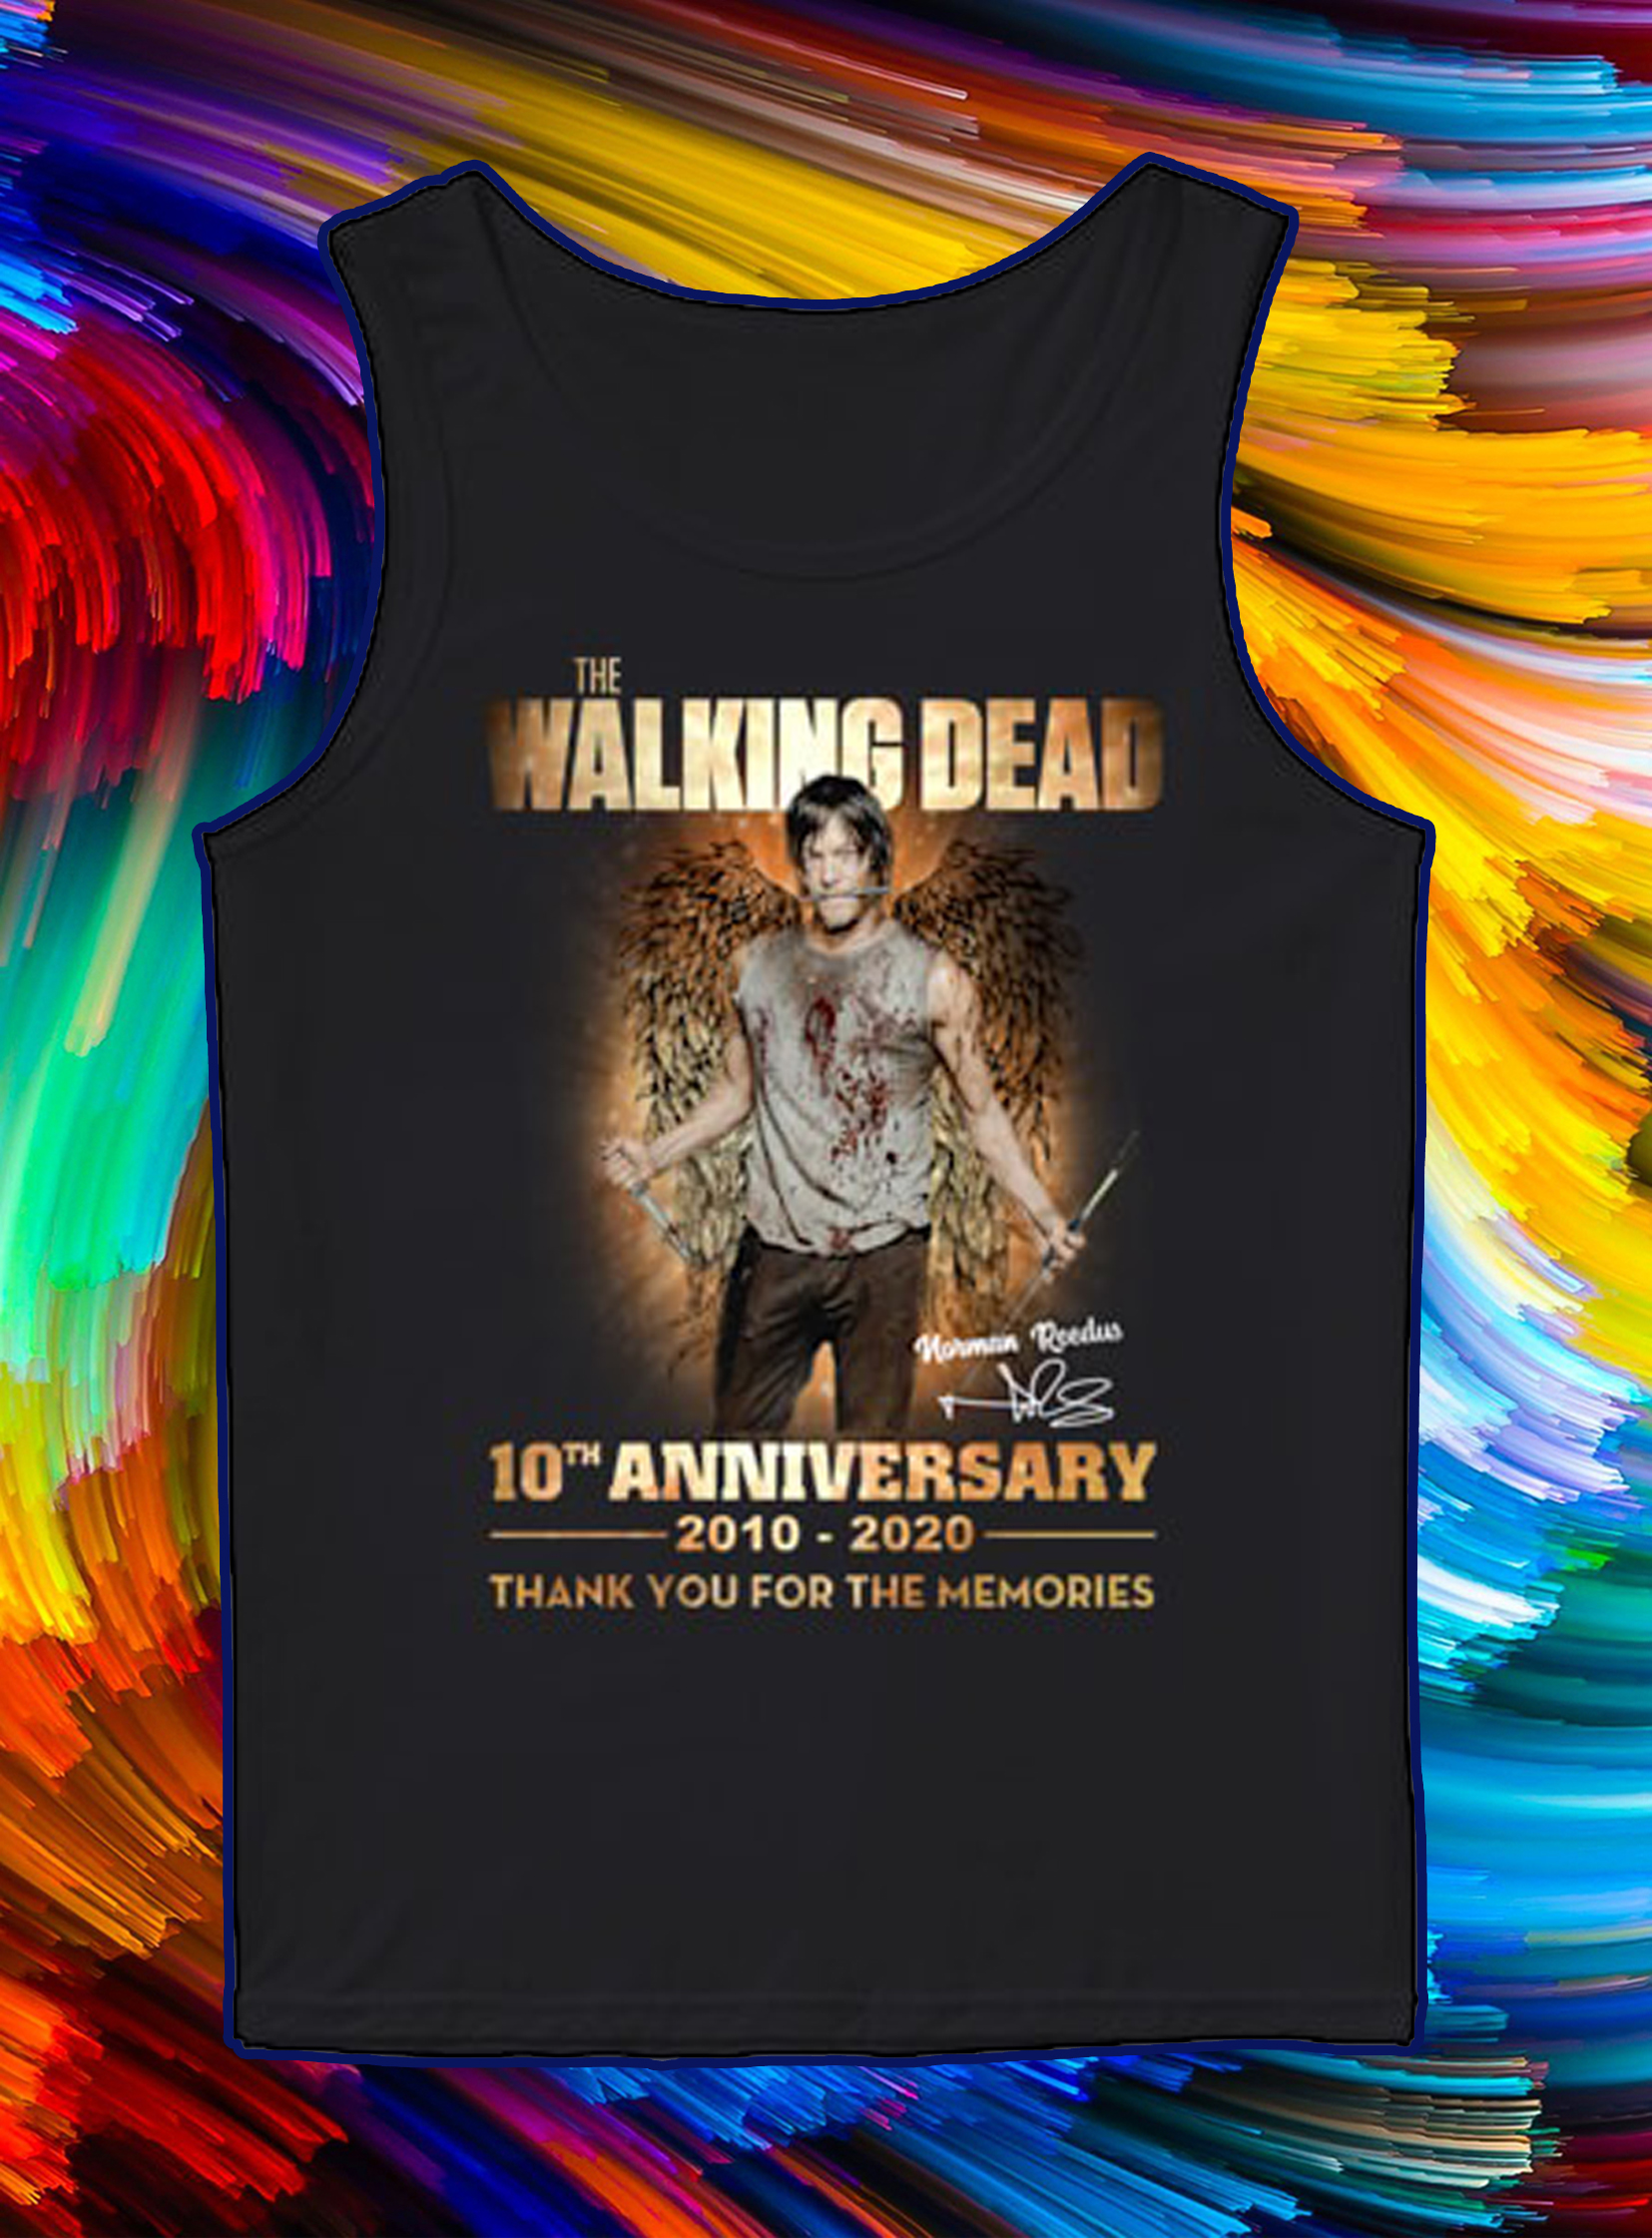 The walking dead 10th anniversary 2010 2020 thank you for the memories tank top